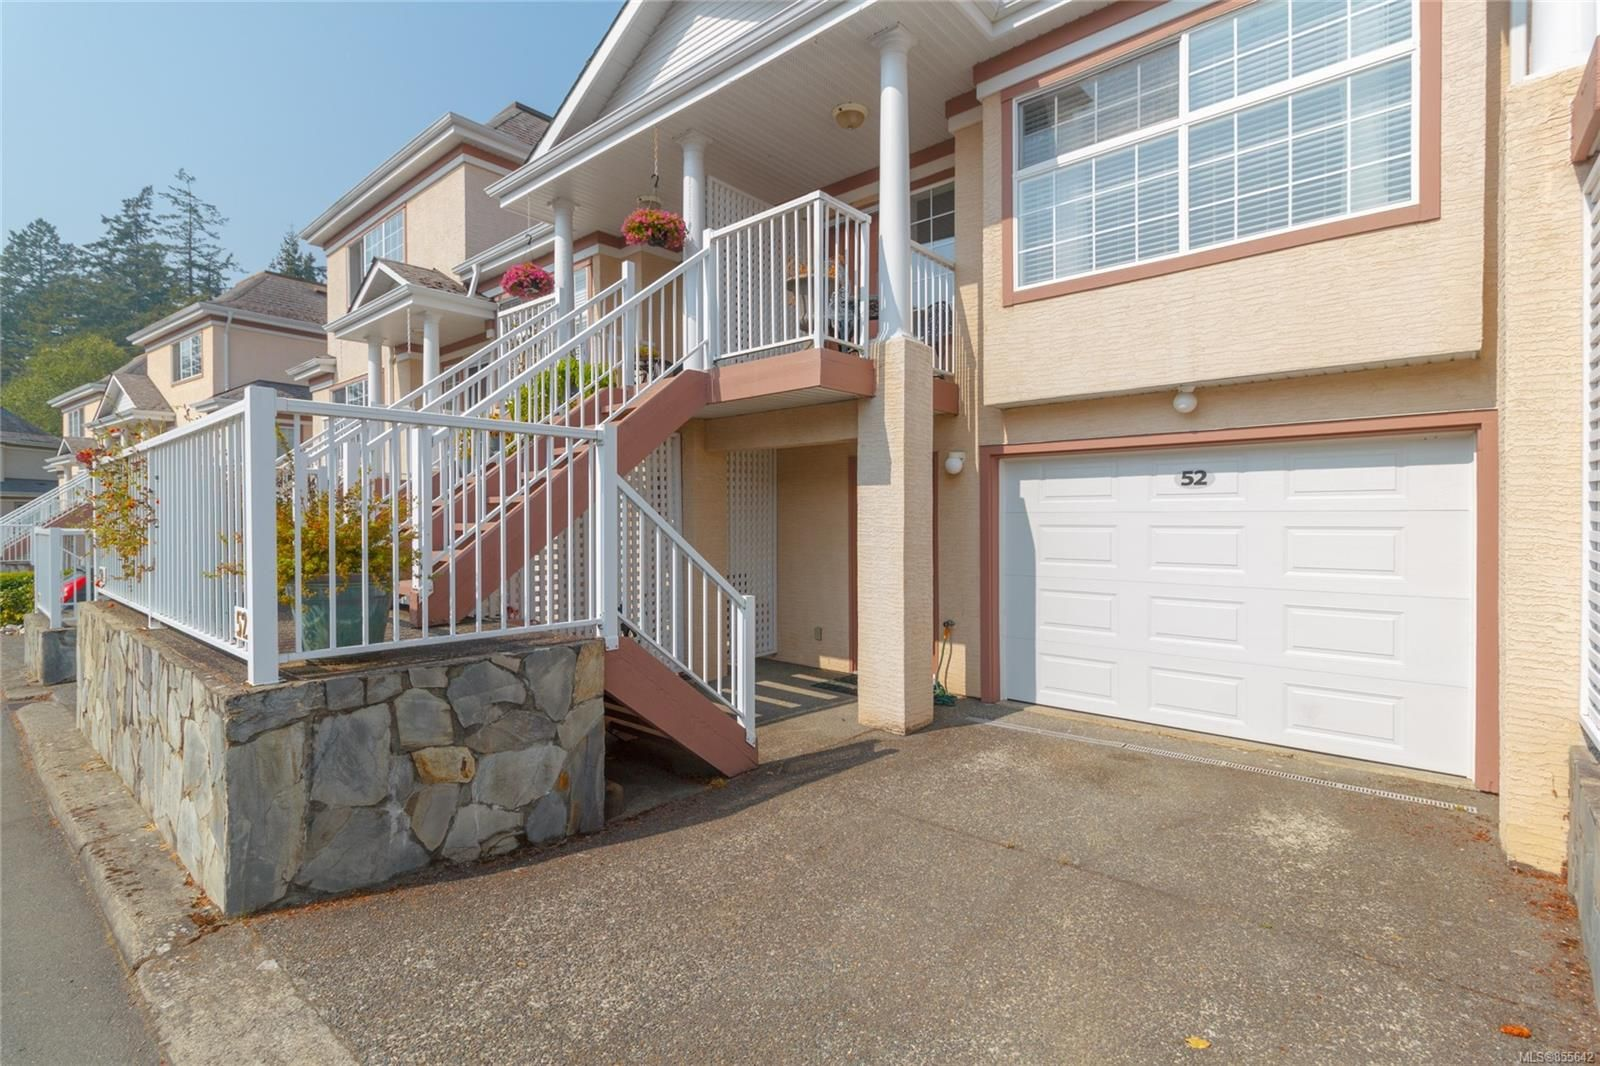 Photo 2: Photos: 52 14 Erskine Lane in : VR Hospital Row/Townhouse for sale (View Royal)  : MLS®# 855642